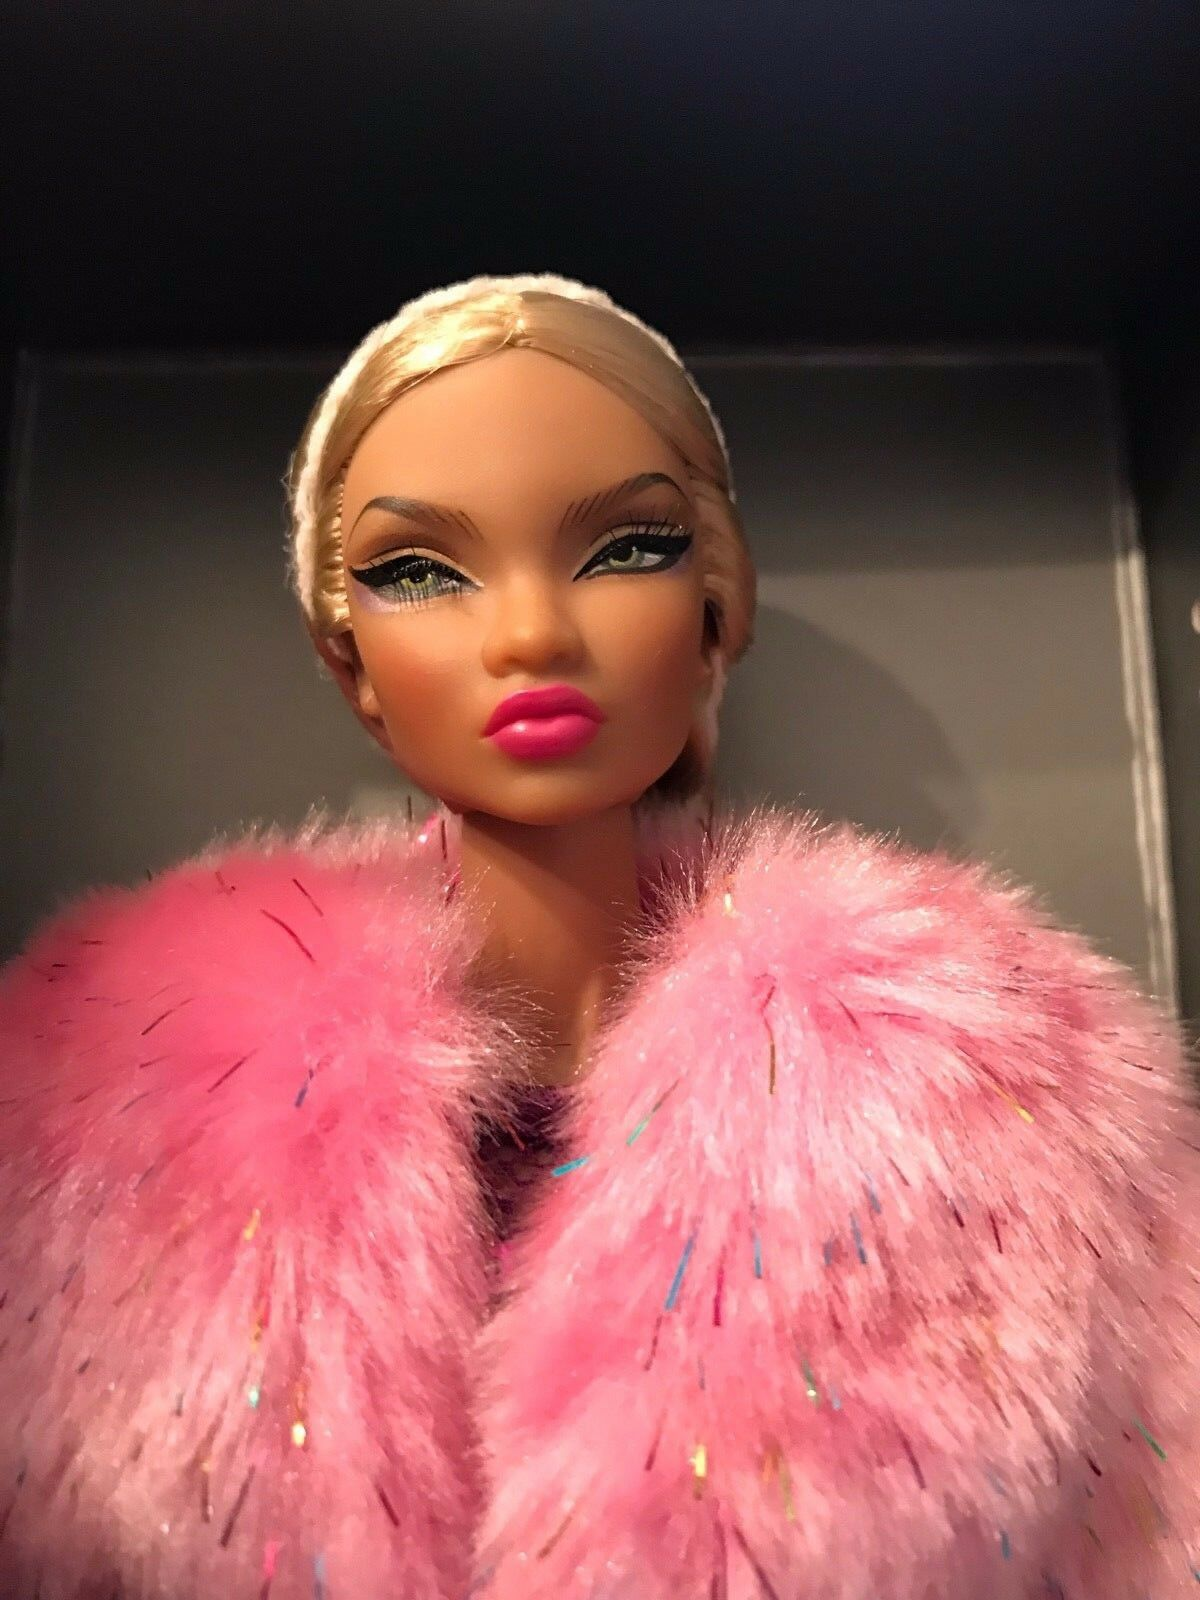 FASHION ROYALTY NUFACE COLETTE DURANGER SUPERNOVA DOLL NRFB 2018 IN HANDS